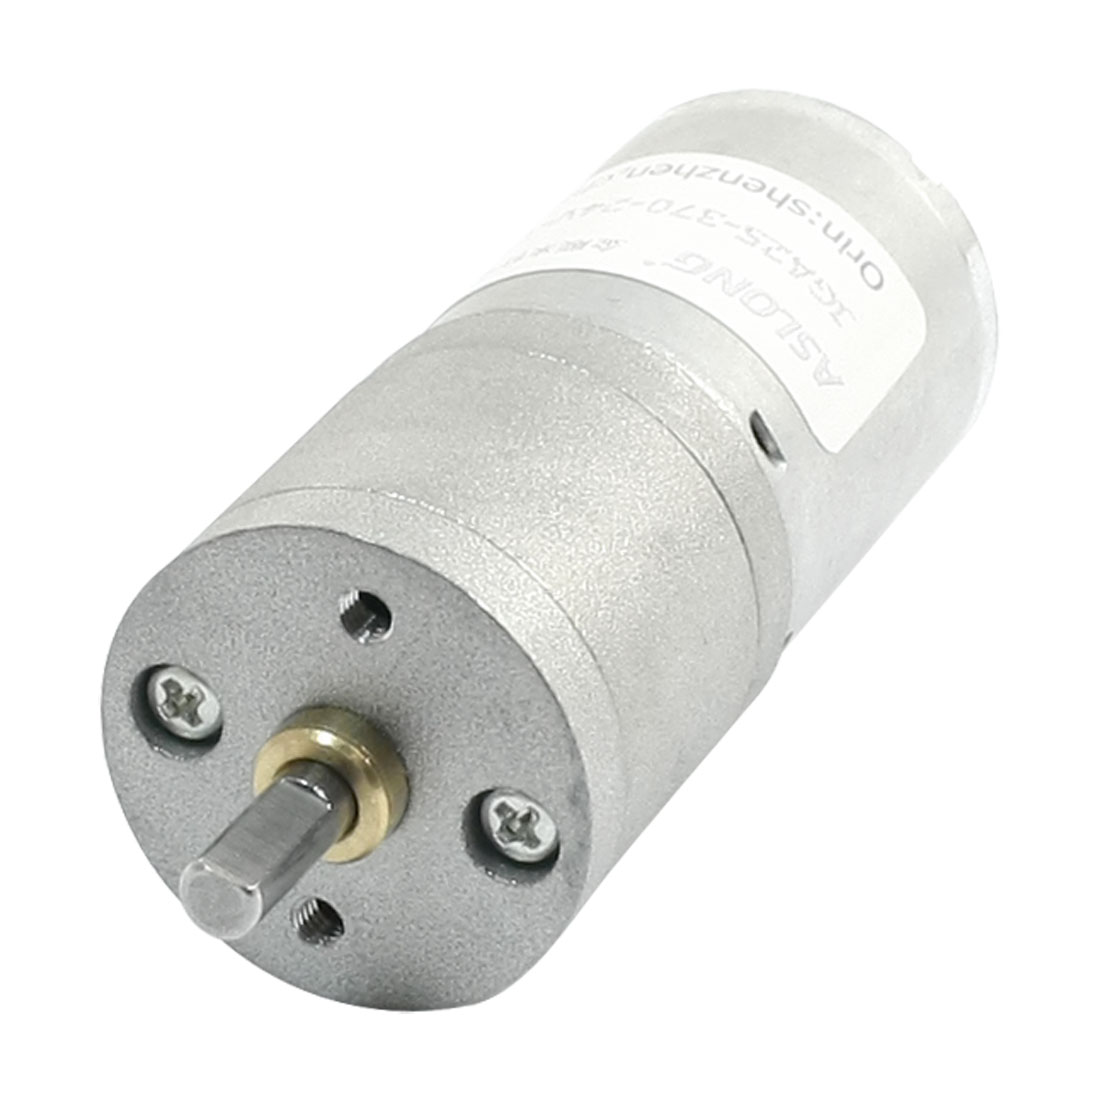 GA25-370 DC 24V 36r/min 4mm Shaft Cylinder Speed Reduce Gear Motor